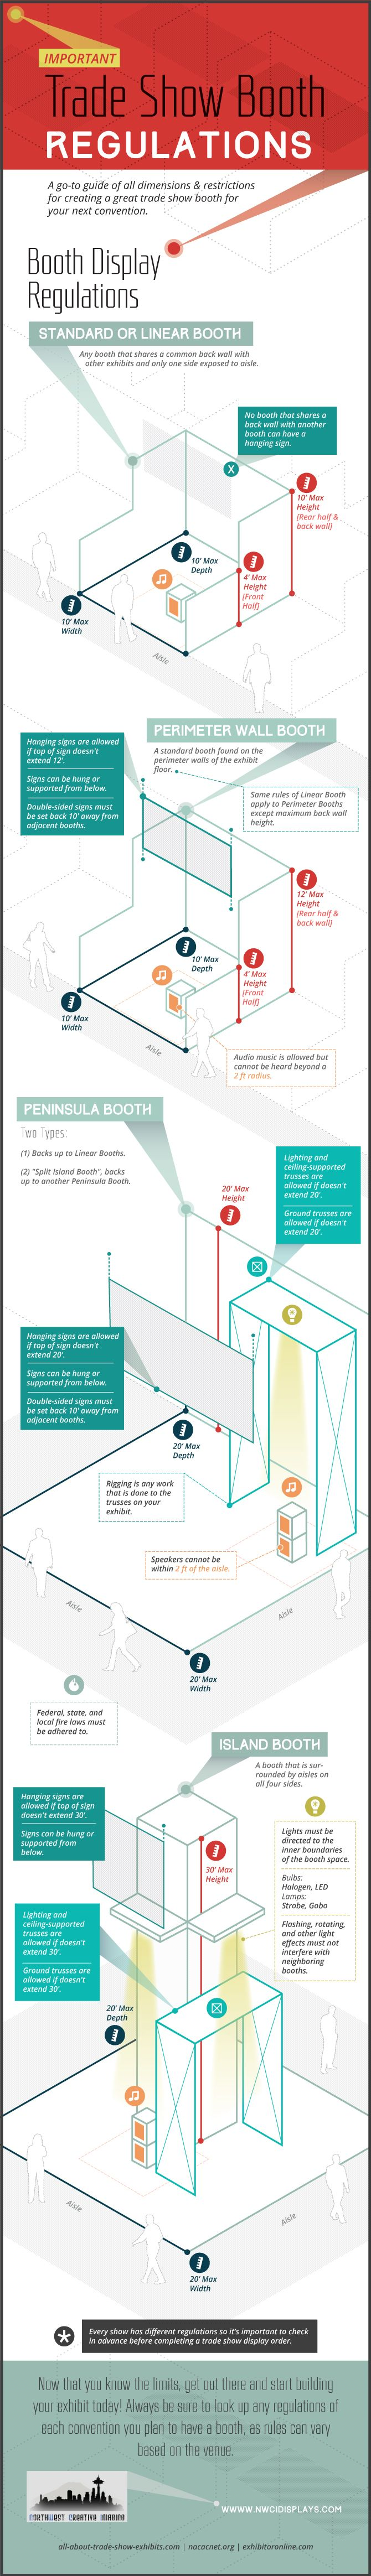 Trade Show Booth Regulations - Northwest Creative Imaging Blog #infographic